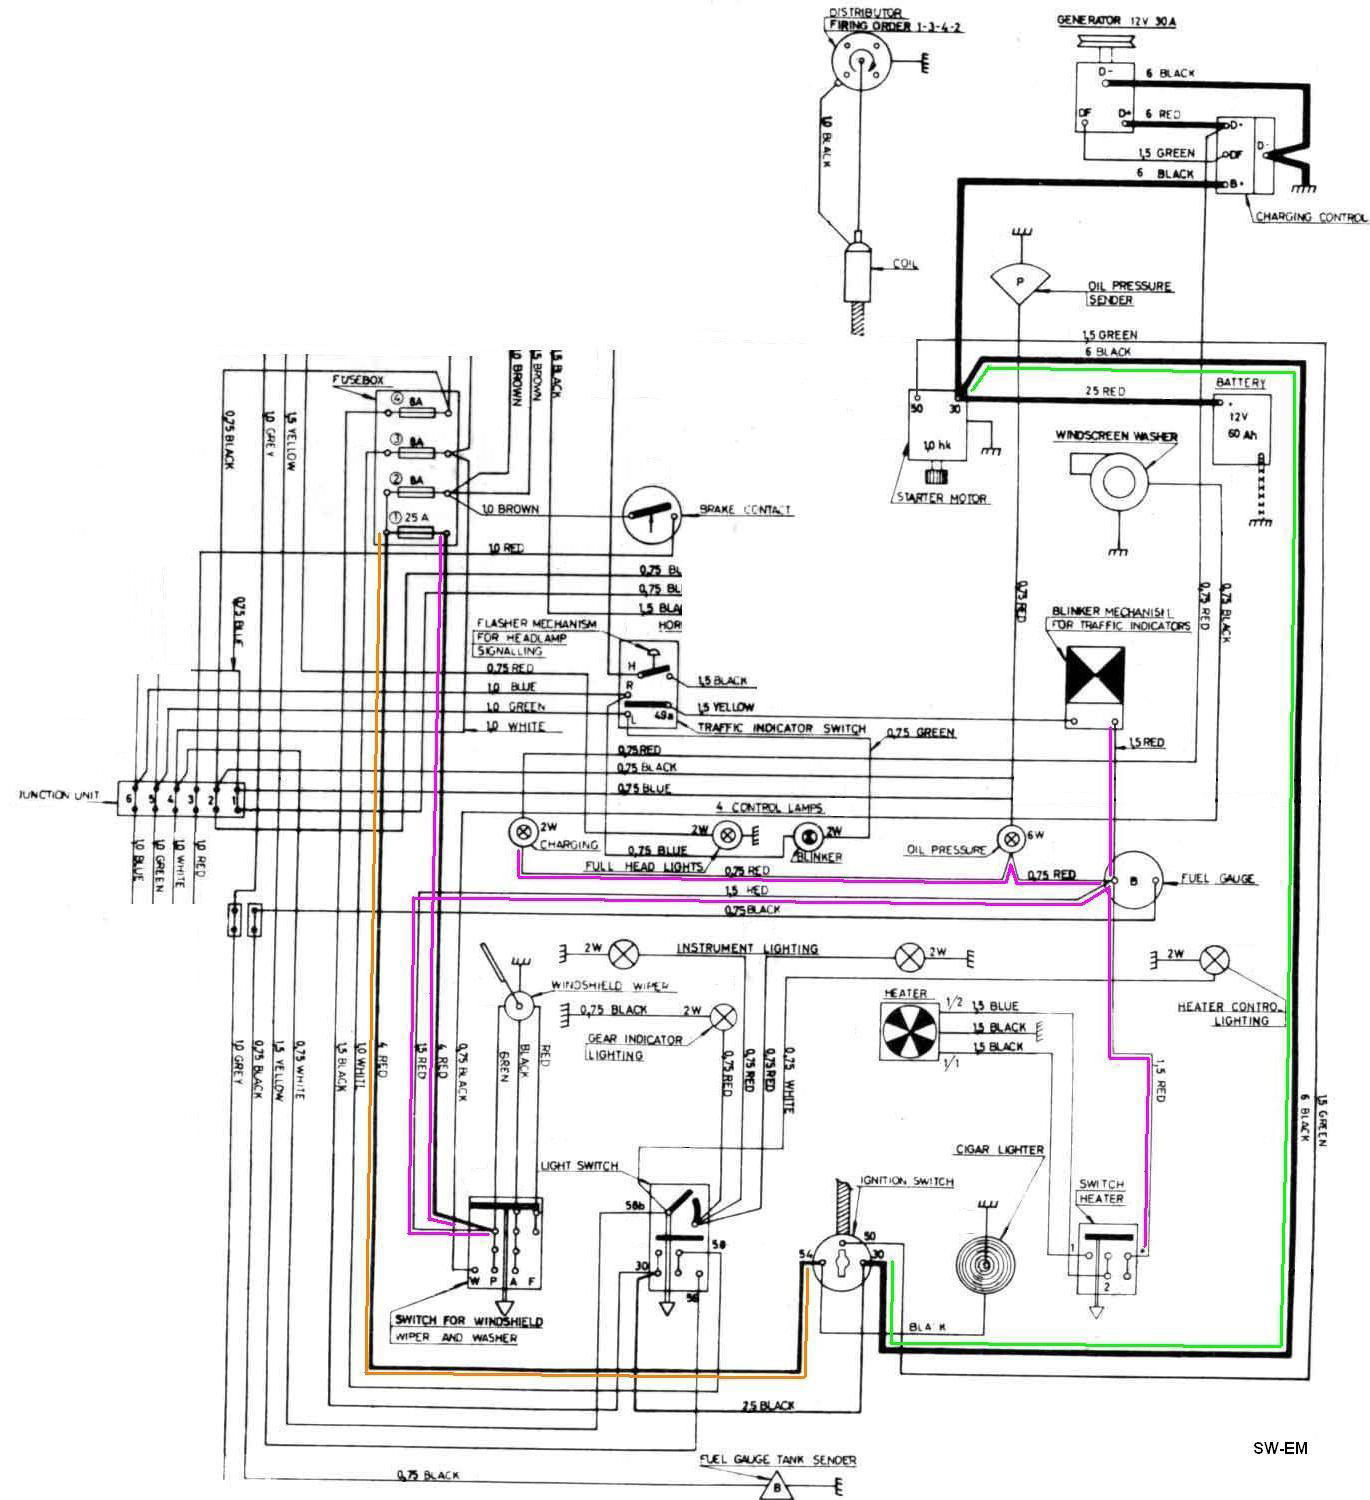 IGN SW wiring diag 122 markup 1800 ignition wiring swedish vs british design volvo penta industrial engine wiring diagram at aneh.co